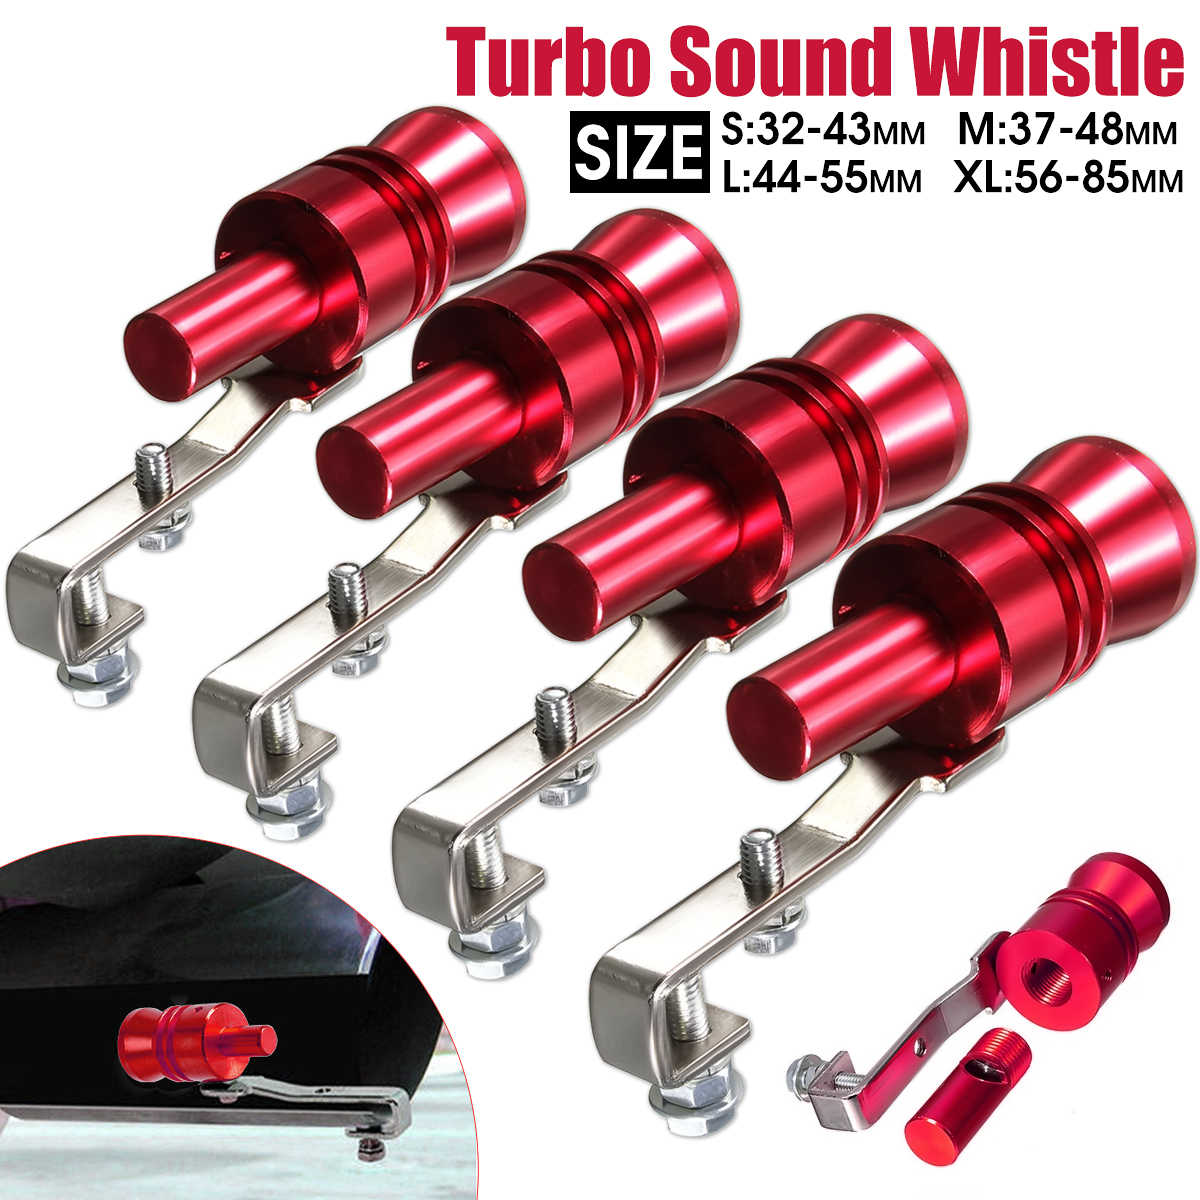 Universele Rode Motorfiets Auto Bov Escape Pijp Turbo Sound Whistle Simulator Geluid Pijp Uitlaat Pijp Maat S, m, L, Xl